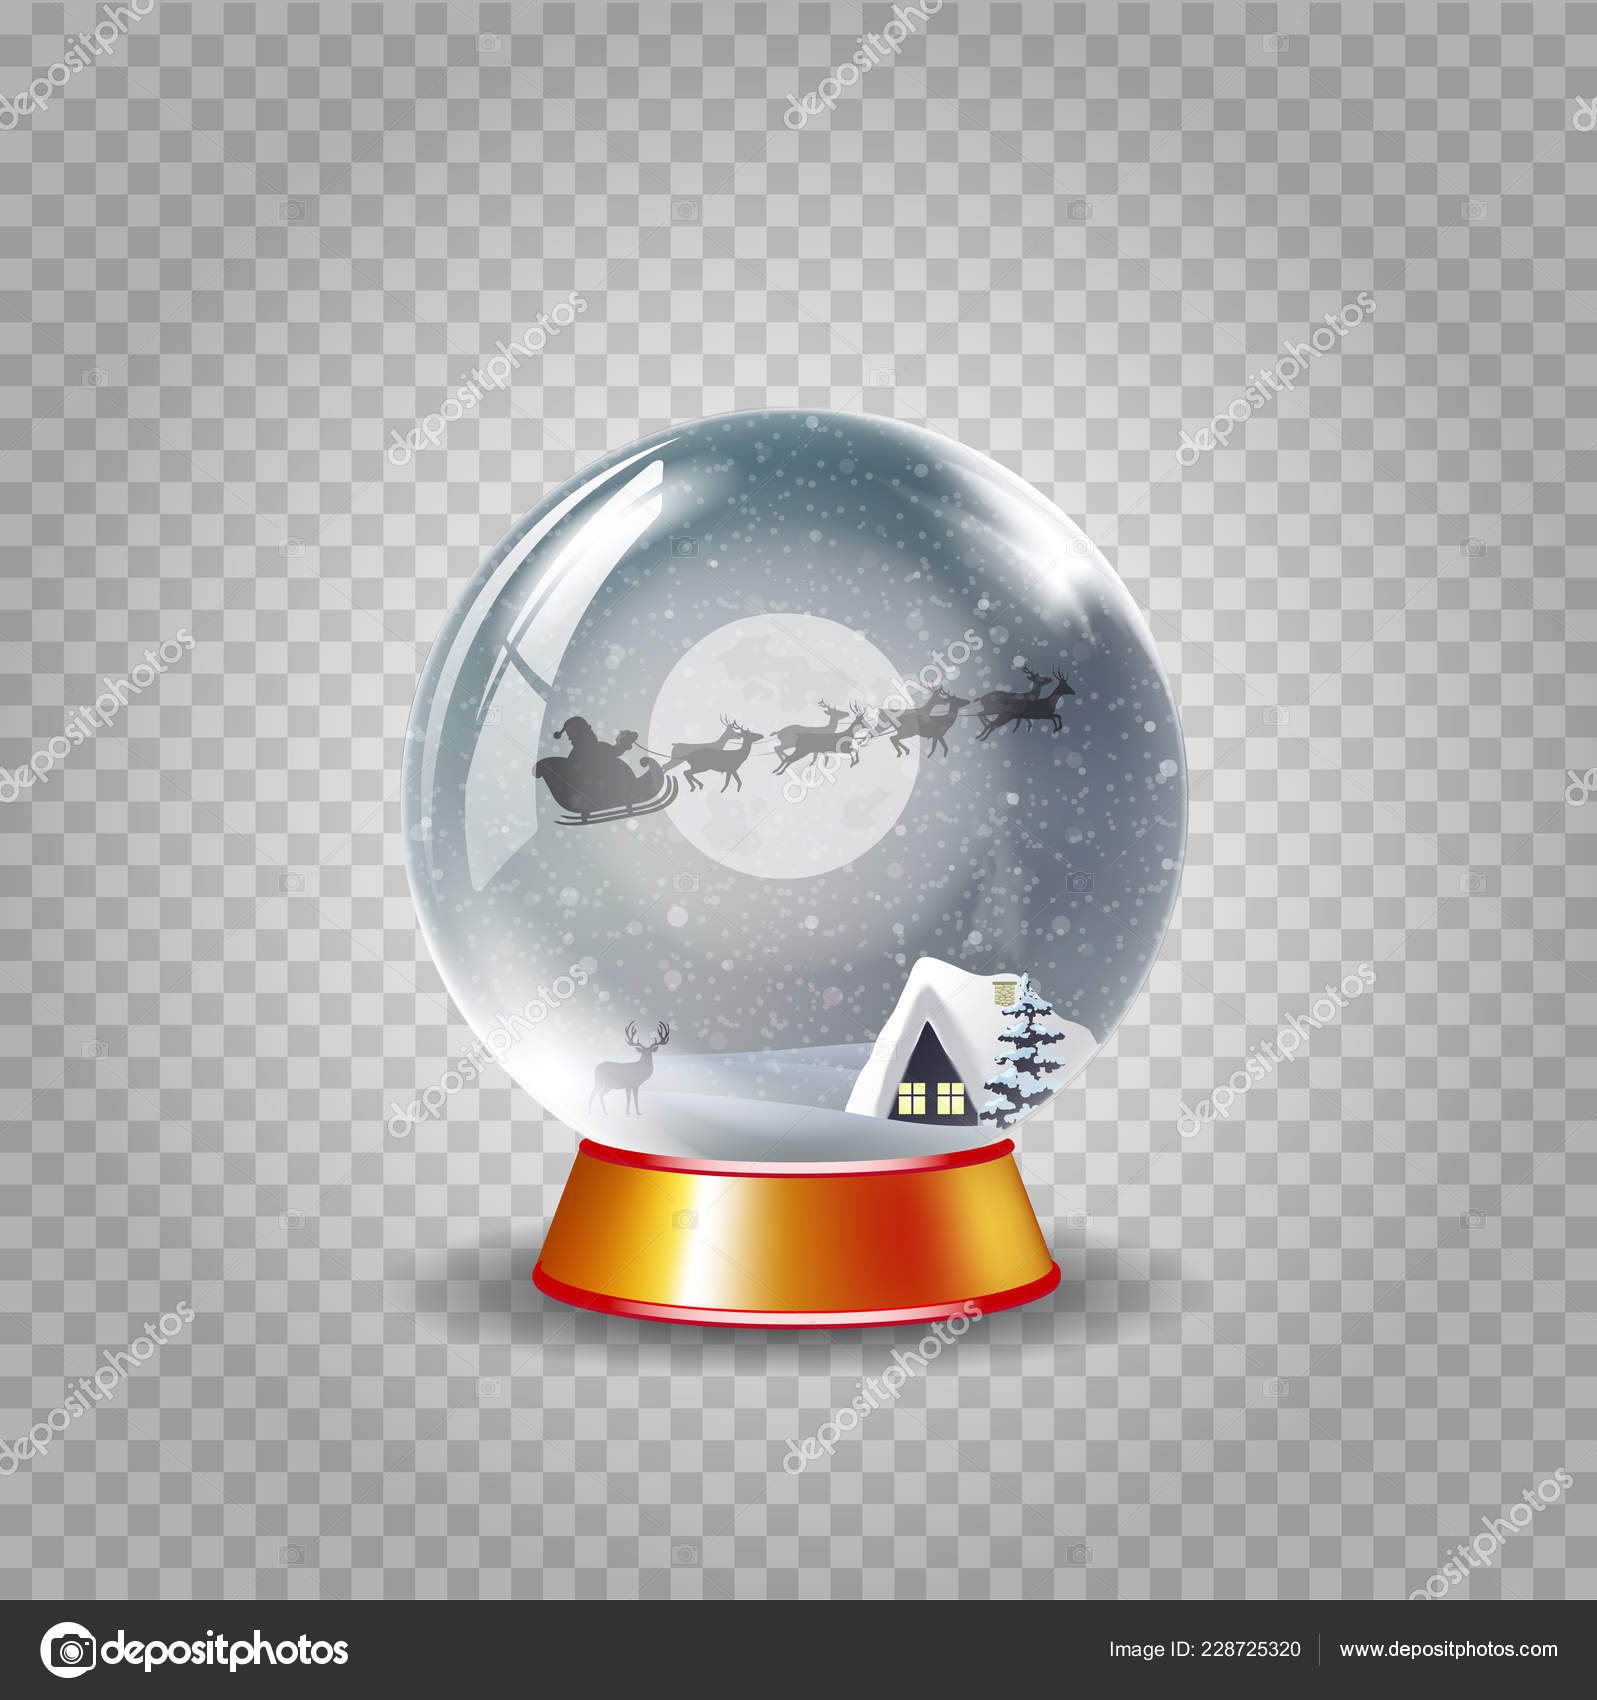 christmas new year crystal snow globe winter snowy night landscape stock vector